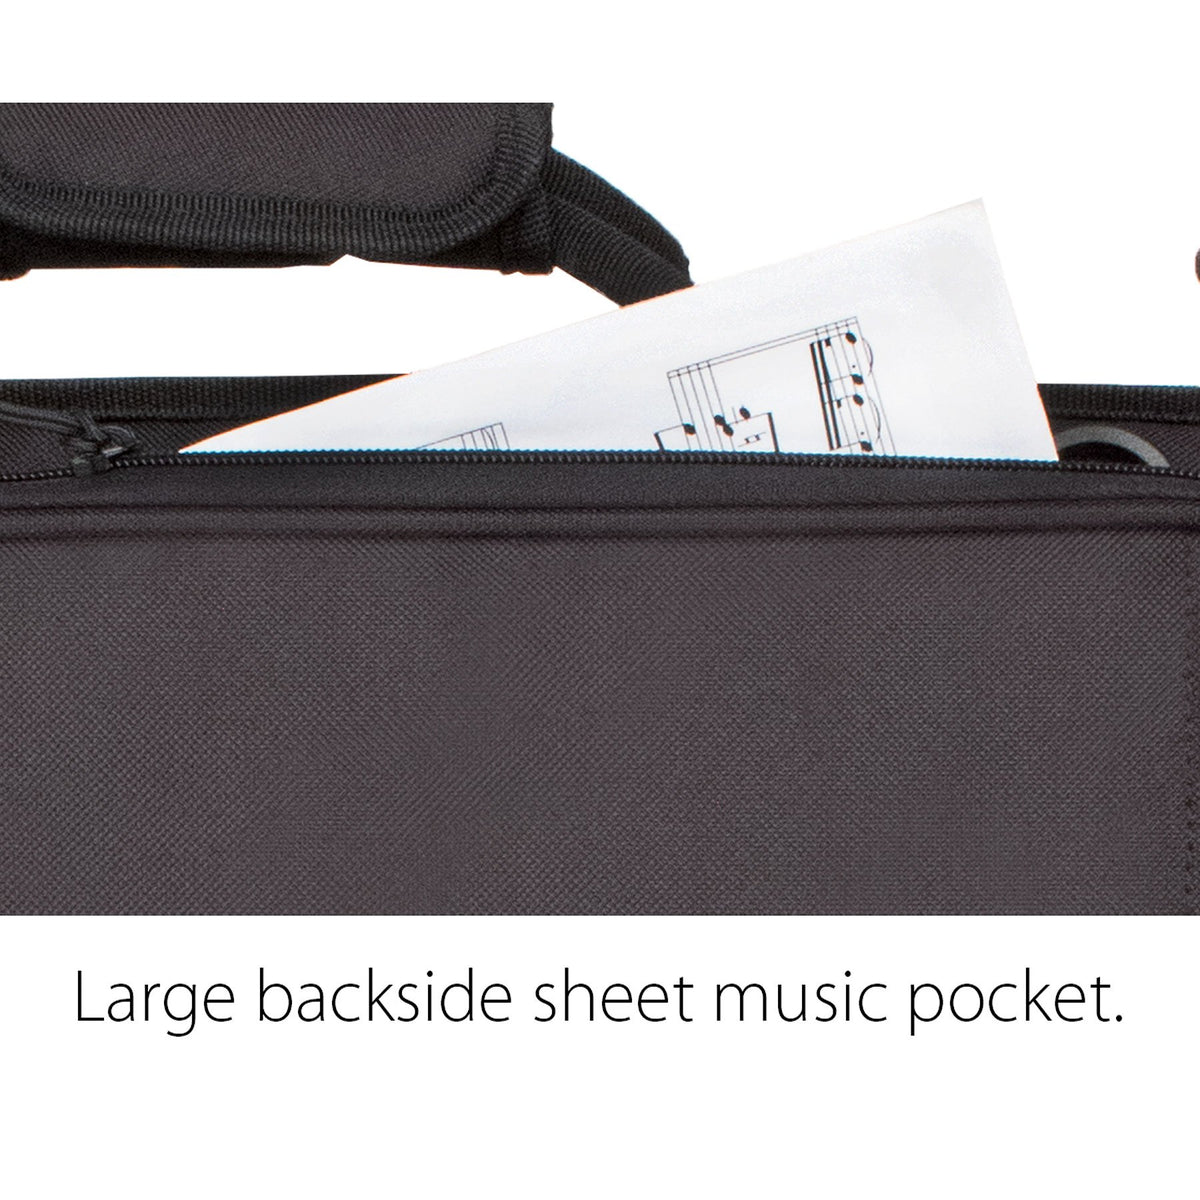 Protec - Flugelhorn Explorer Gig Bag with Sheet Music Pocket-Case-Protec-Music Elements